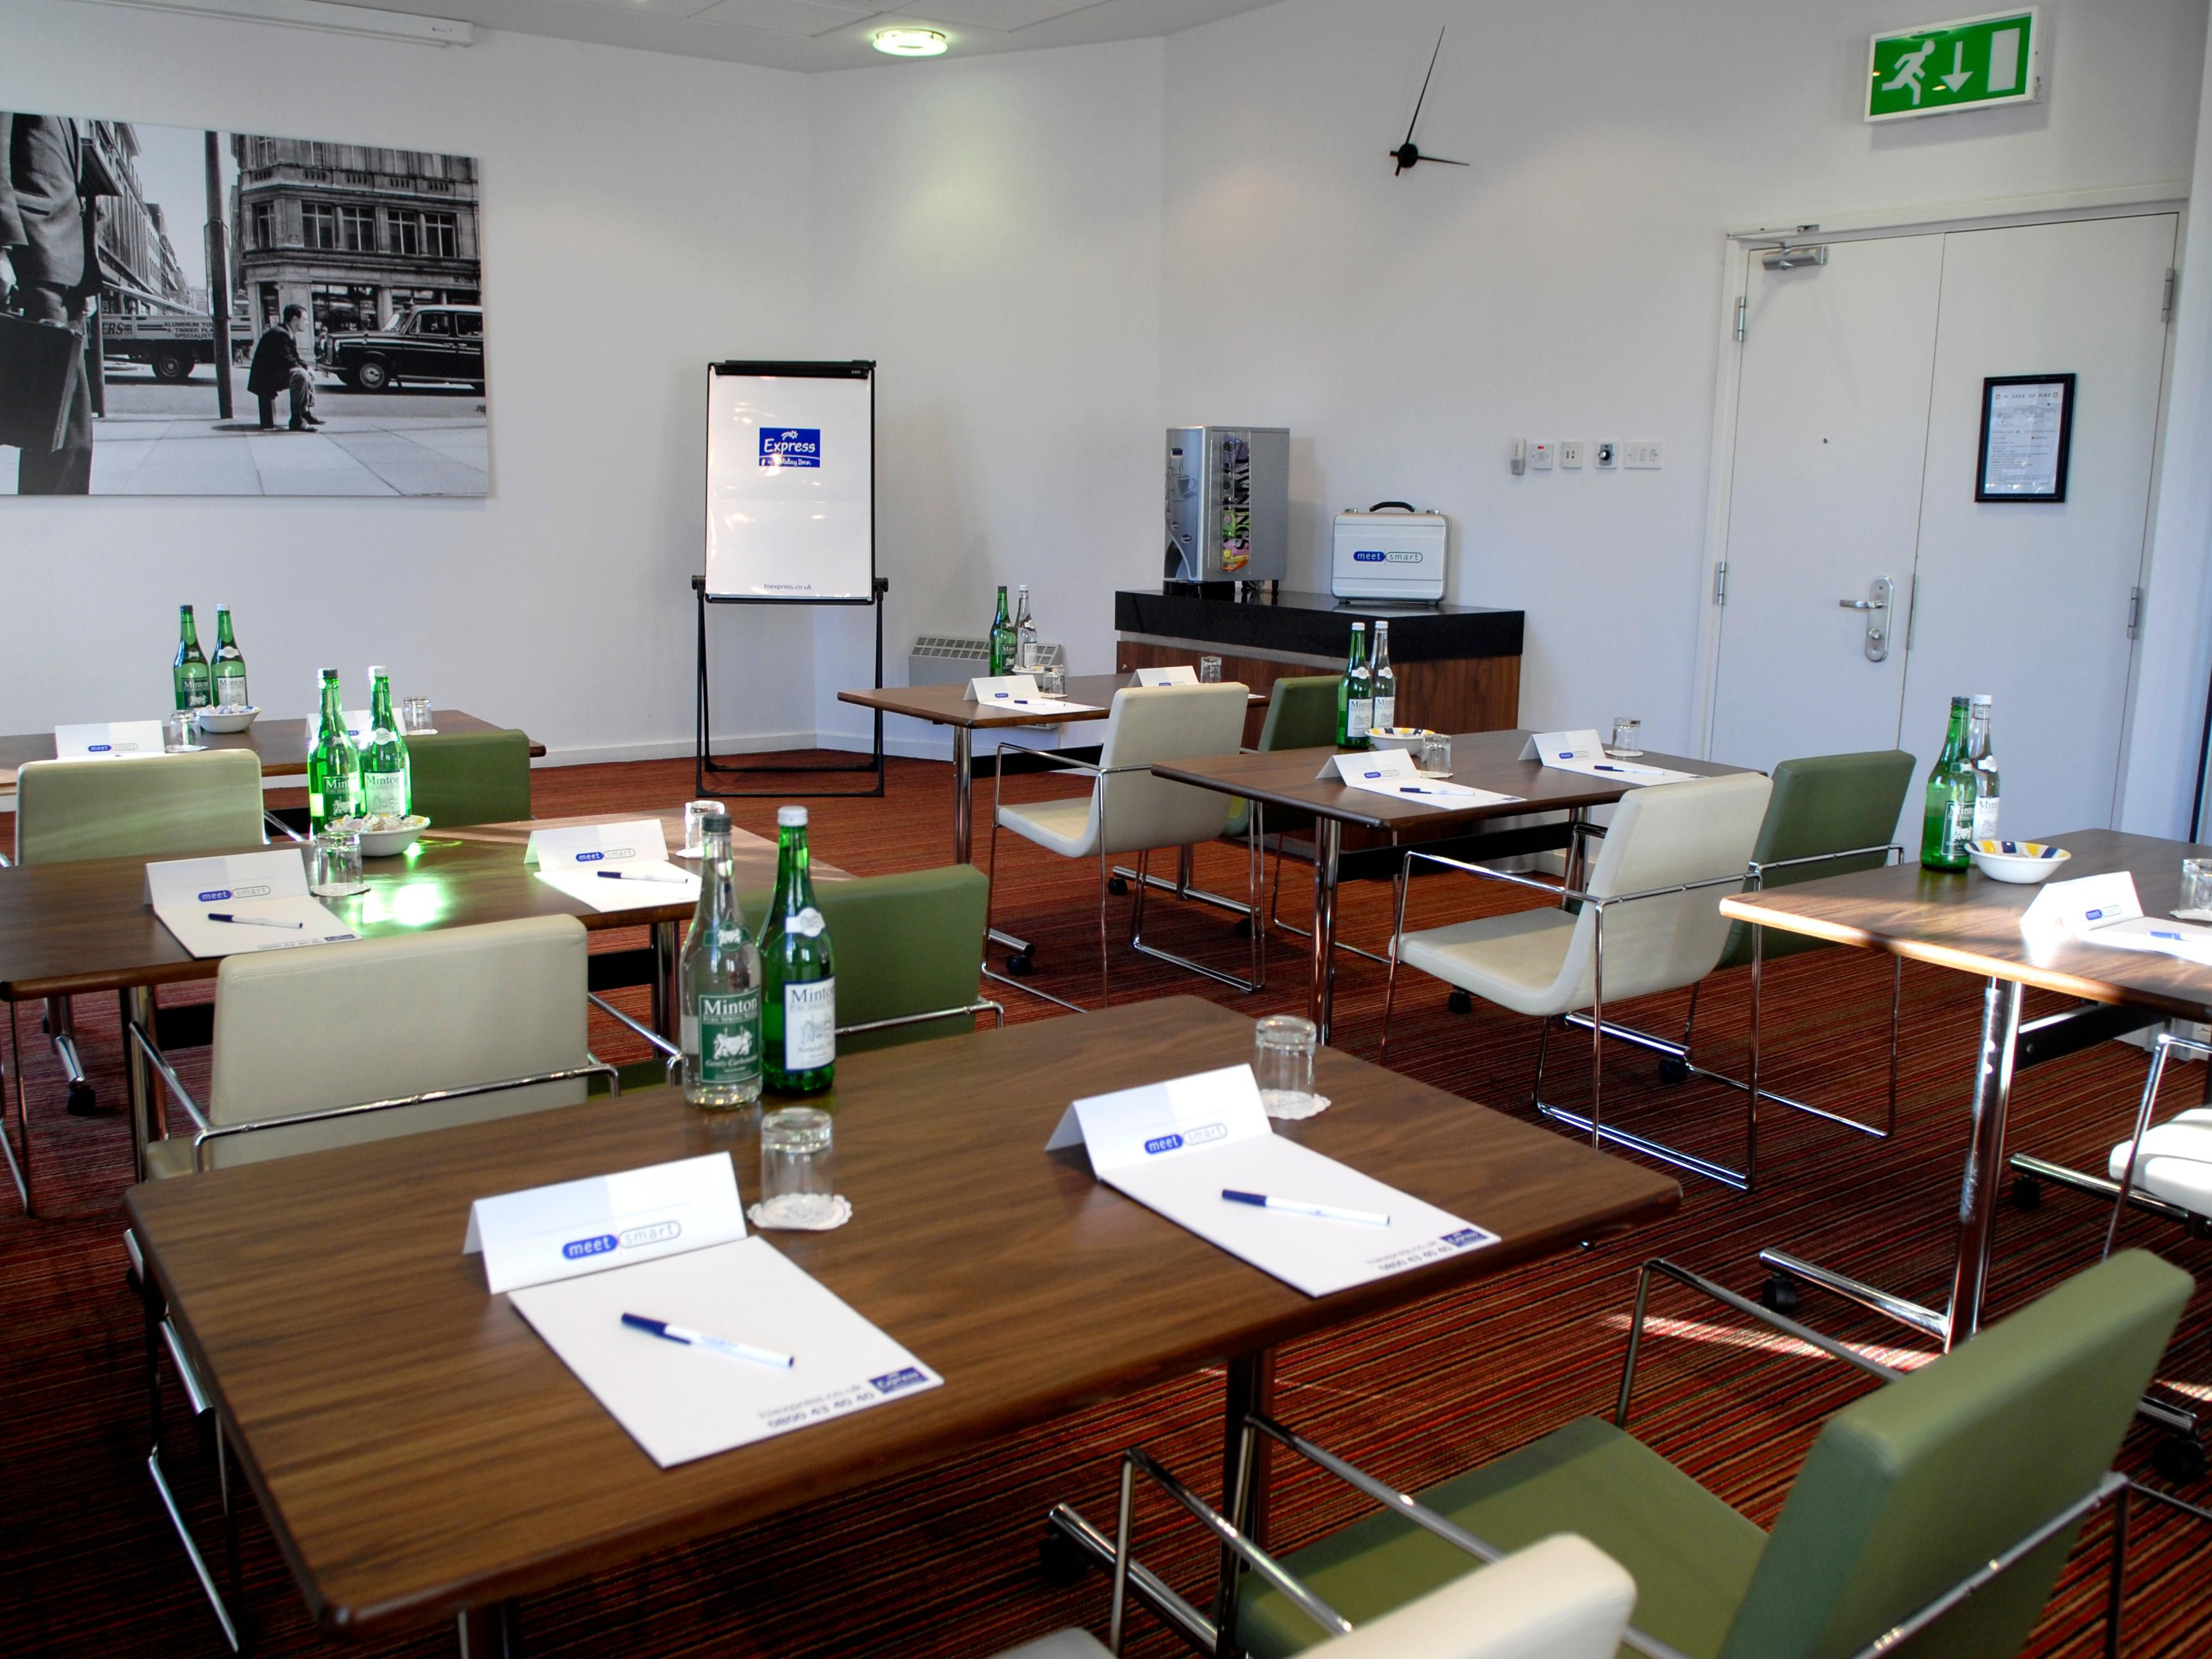 Fenchurch Meeting Room - Classroom Layout